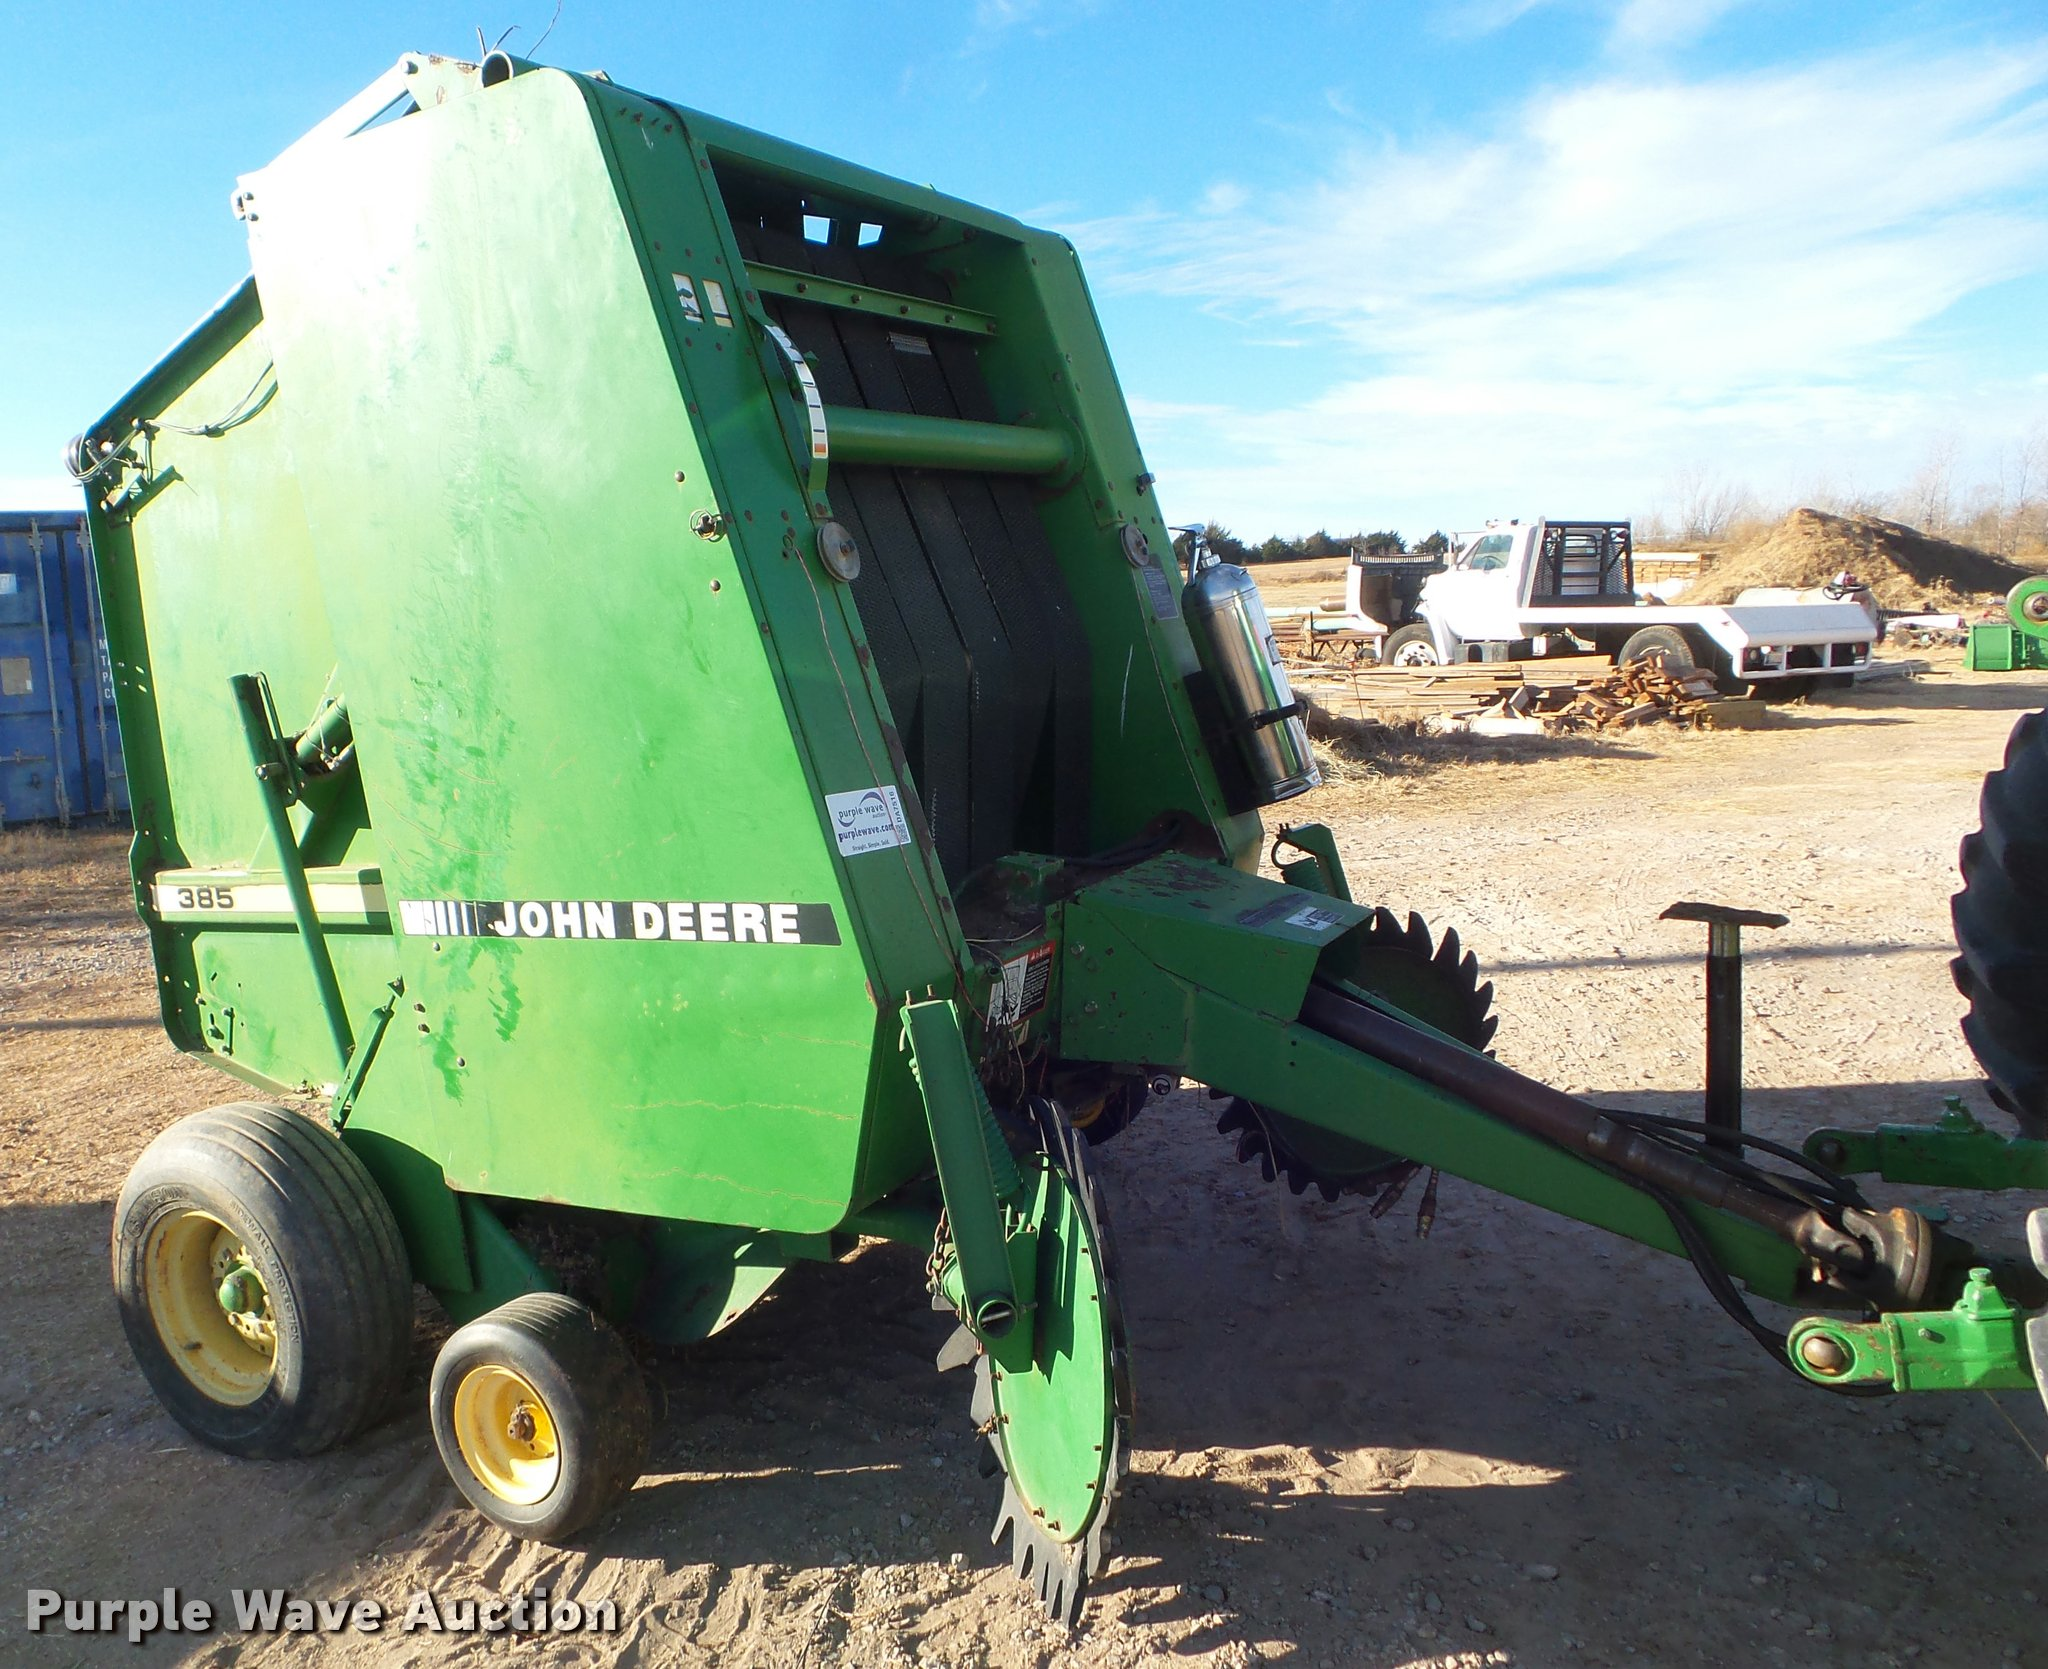 John Deere 385 round baler | Item DA7516 | SOLD! February 22